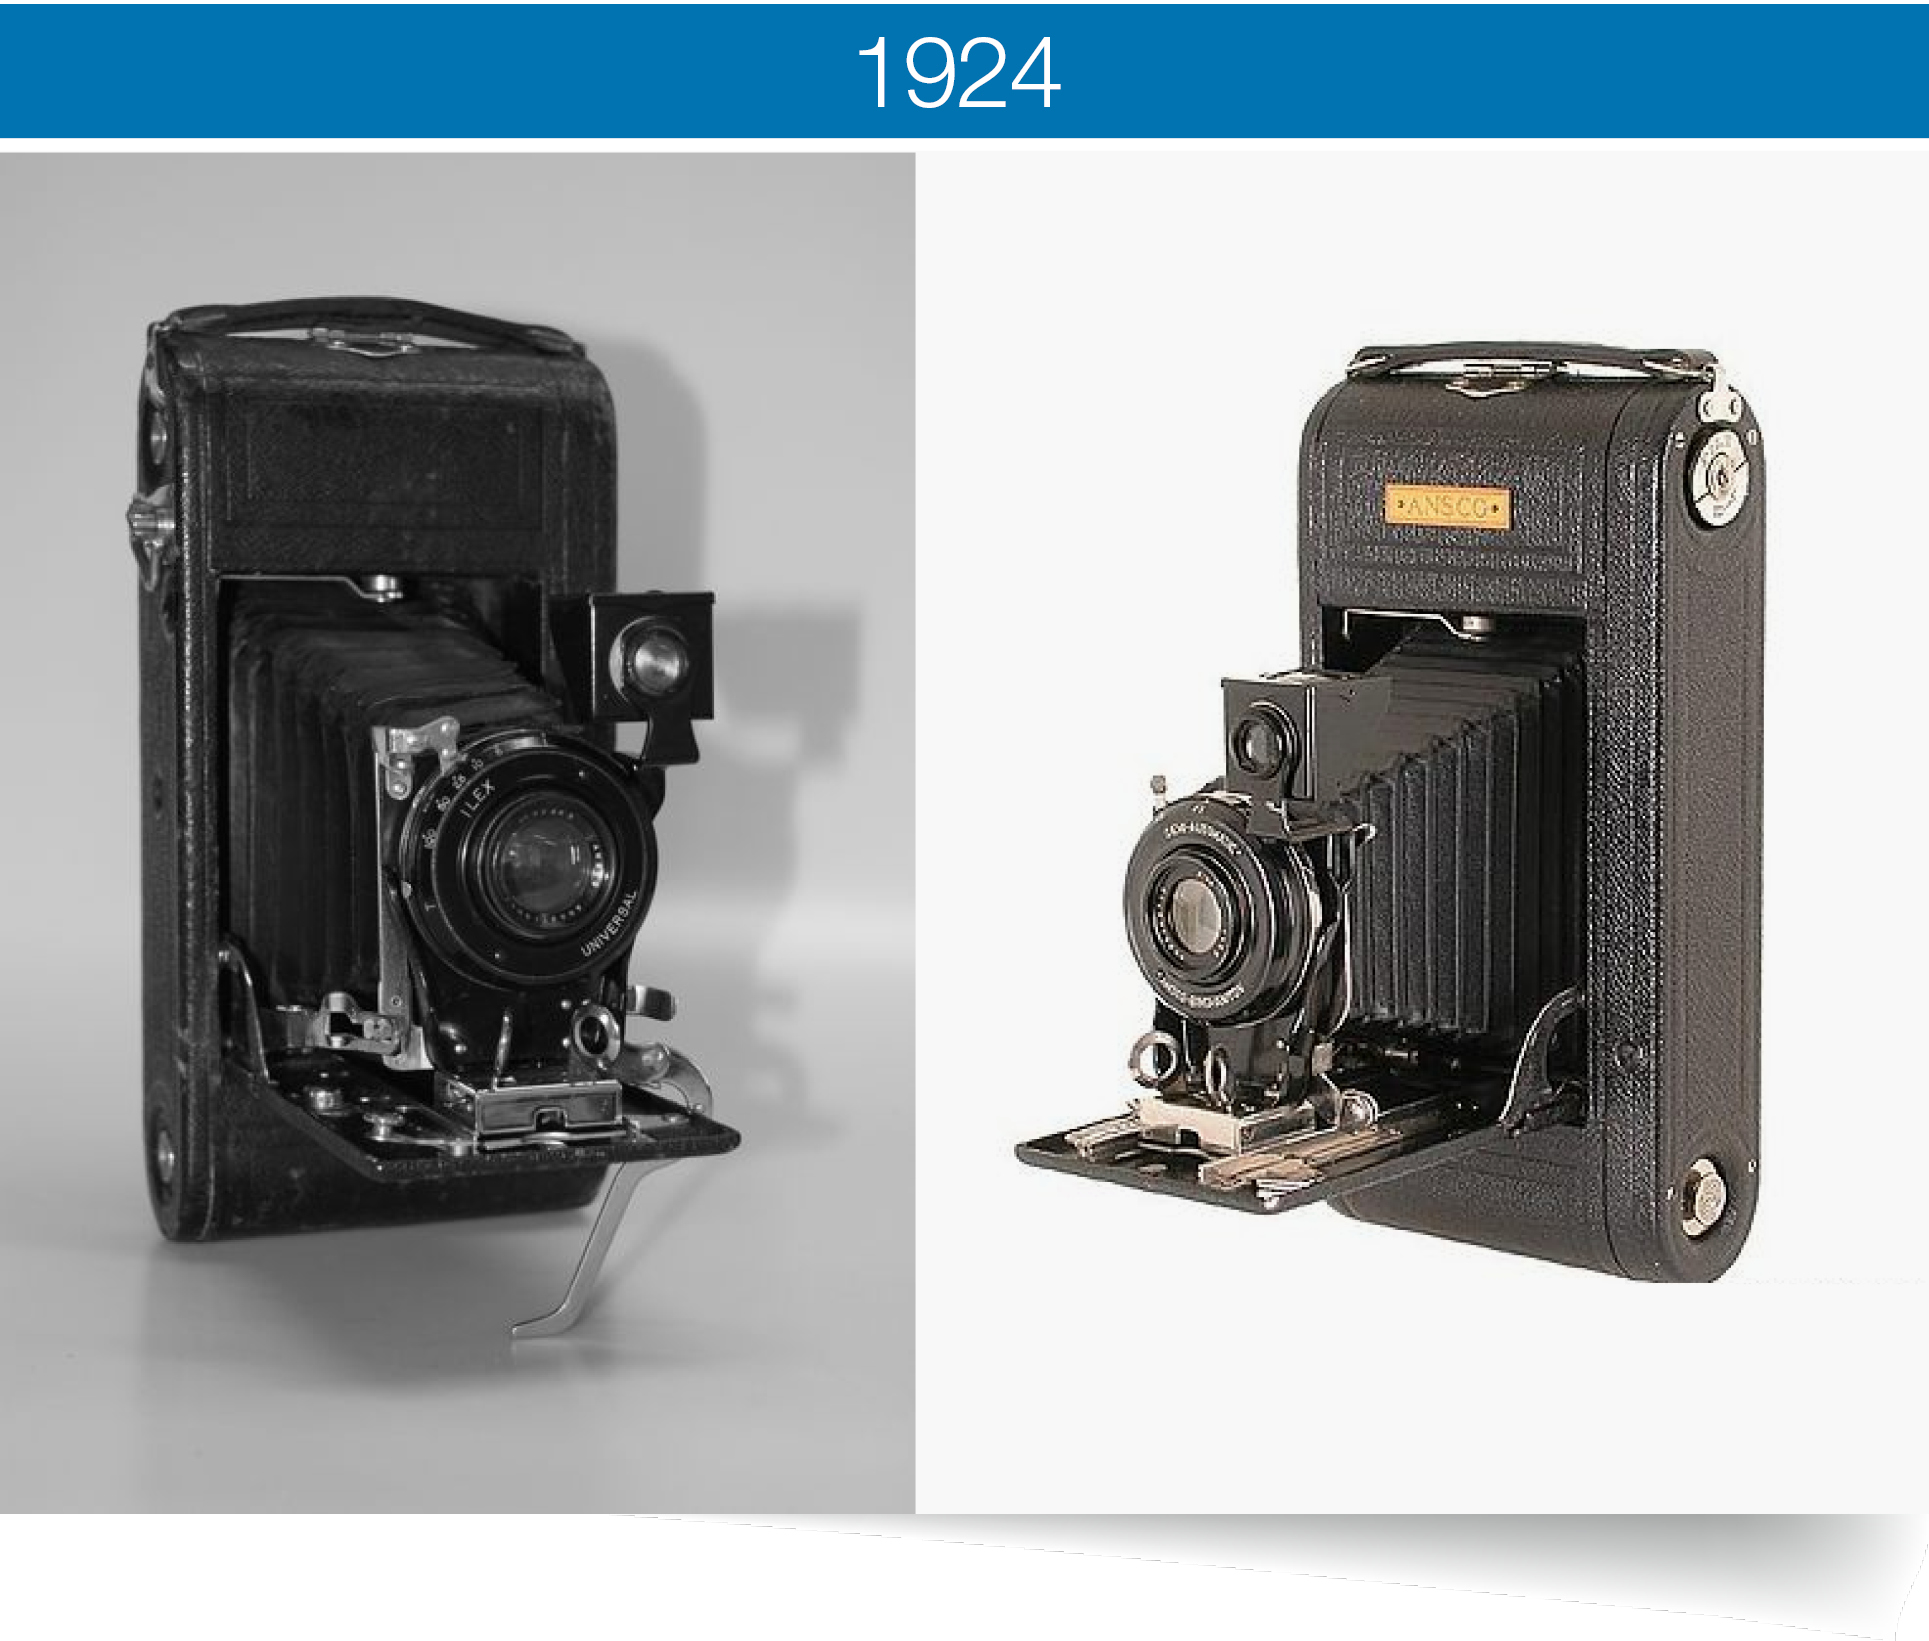 the Automatic ANSCO - Designed by Carl Bornmann.It featured a key-wound spring motor to automatically advance the film when the shutter is released. The camera carried a hefty price tag, so later that year they released the Semi-Automatic Ansco (right) with a separate lever on the side for advancing the film.